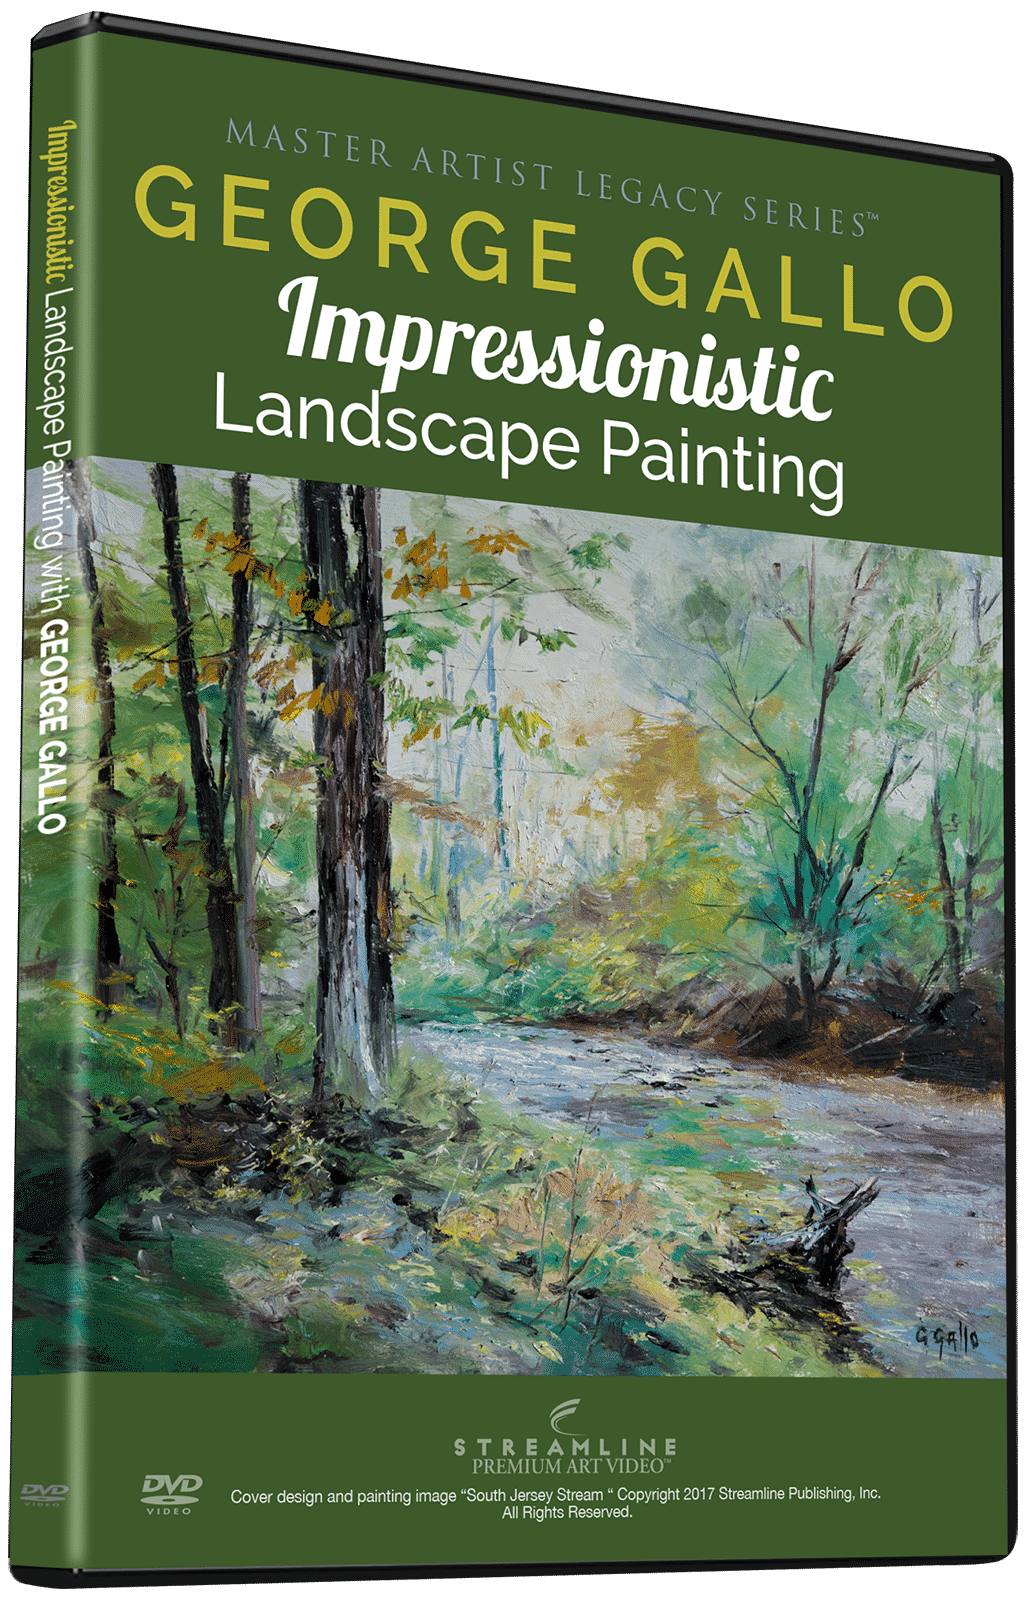 George Gallo: Impressionistic Landscape Painting